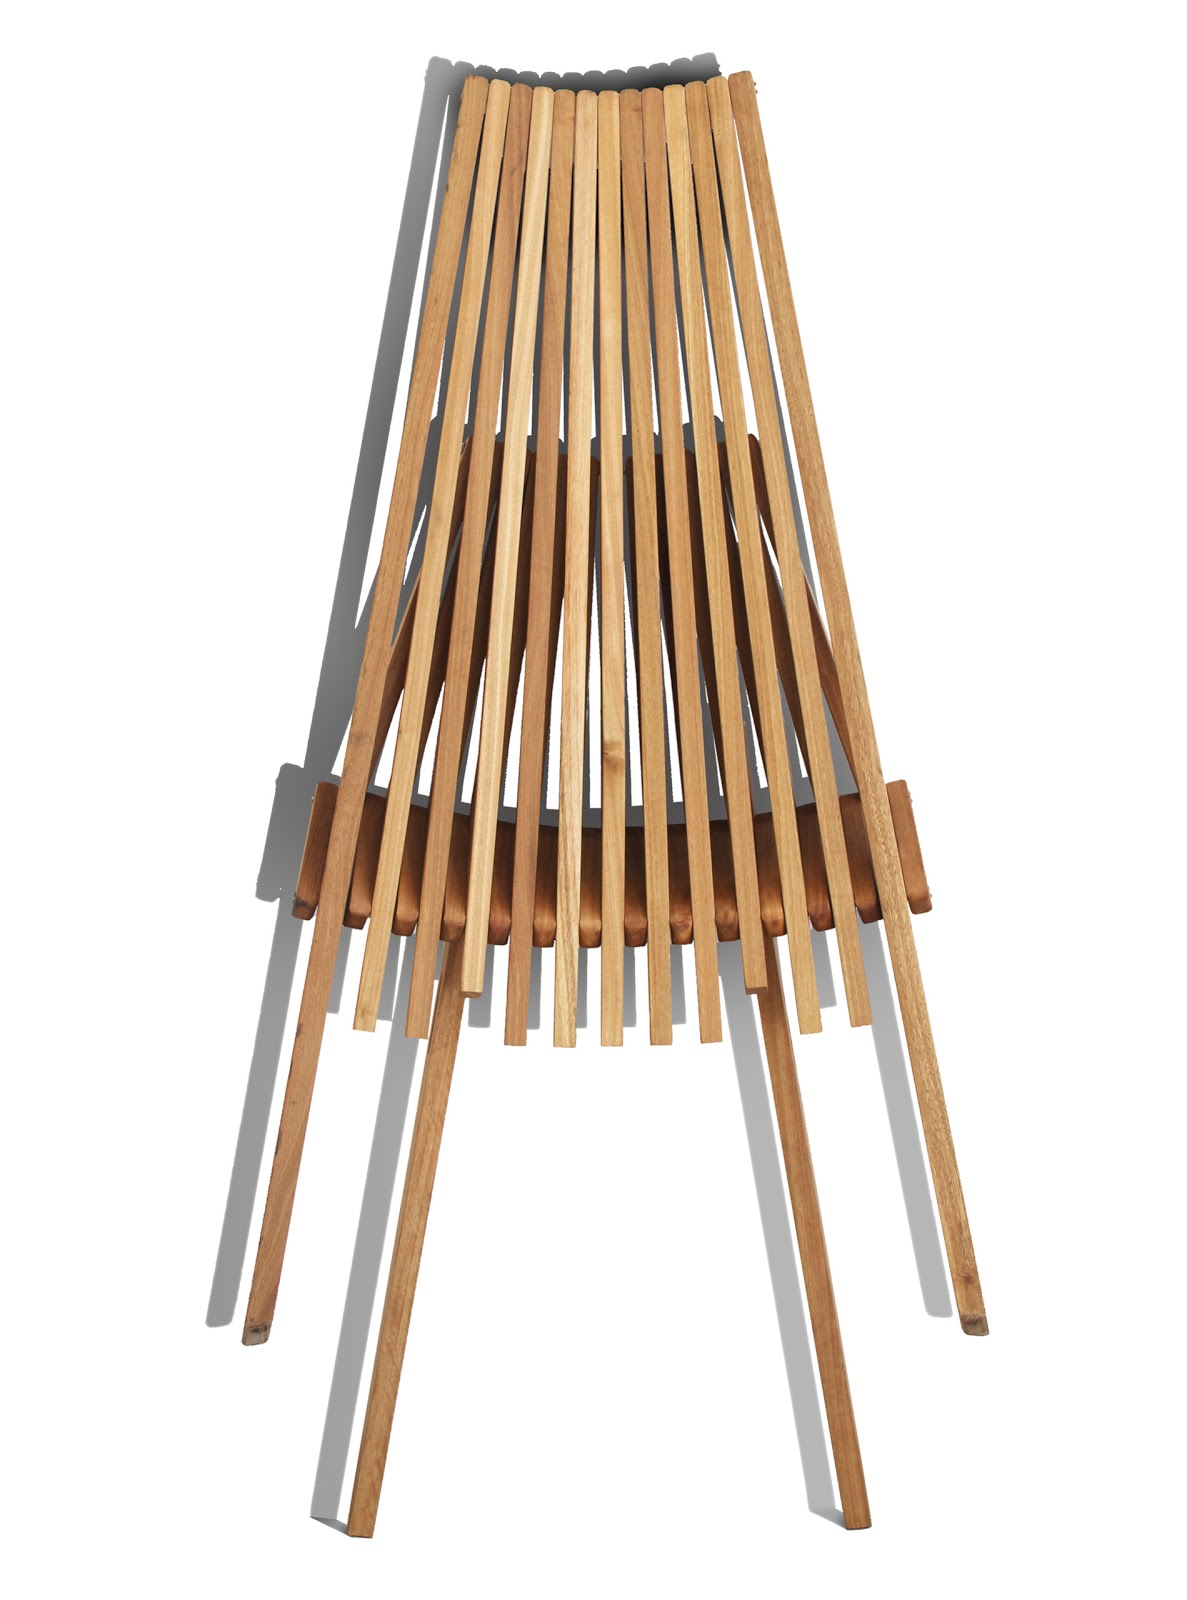 Displaying 19> Images For - Wooden Deck Chairs...